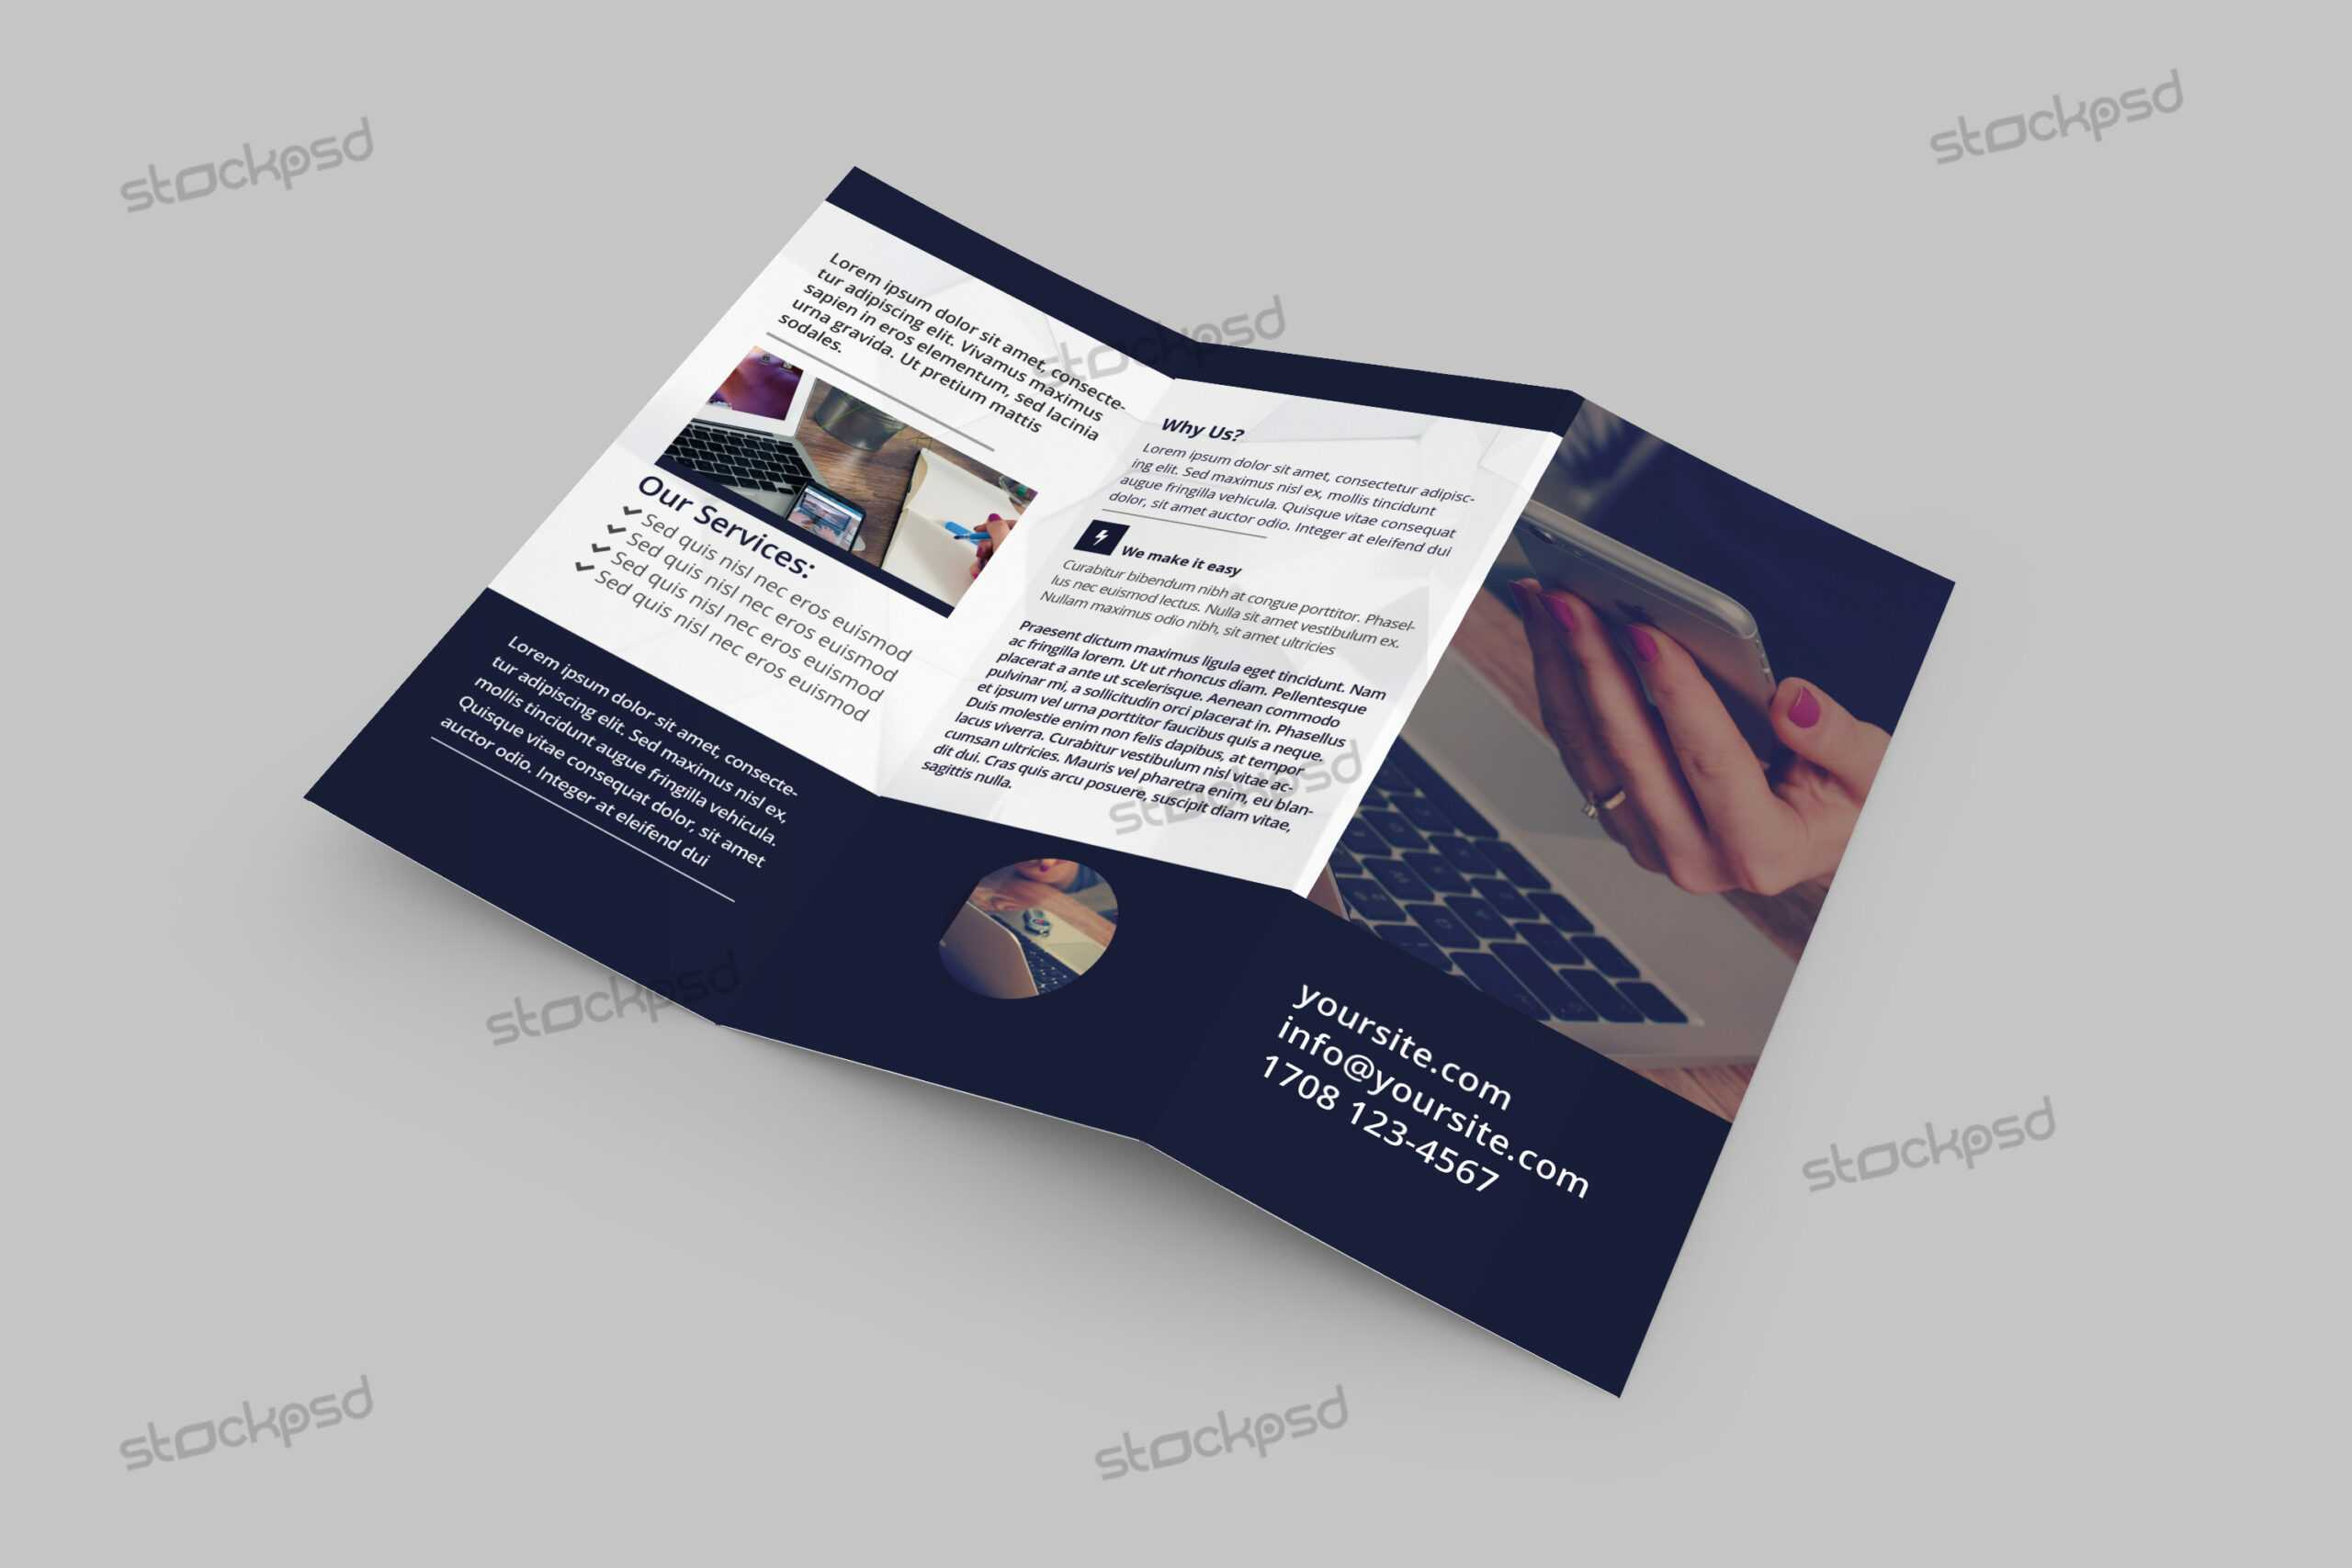 Tri-Fold Corporate Brochure - Free Psd Template - Free Psd pertaining to Brochure Psd Template 3 Fold